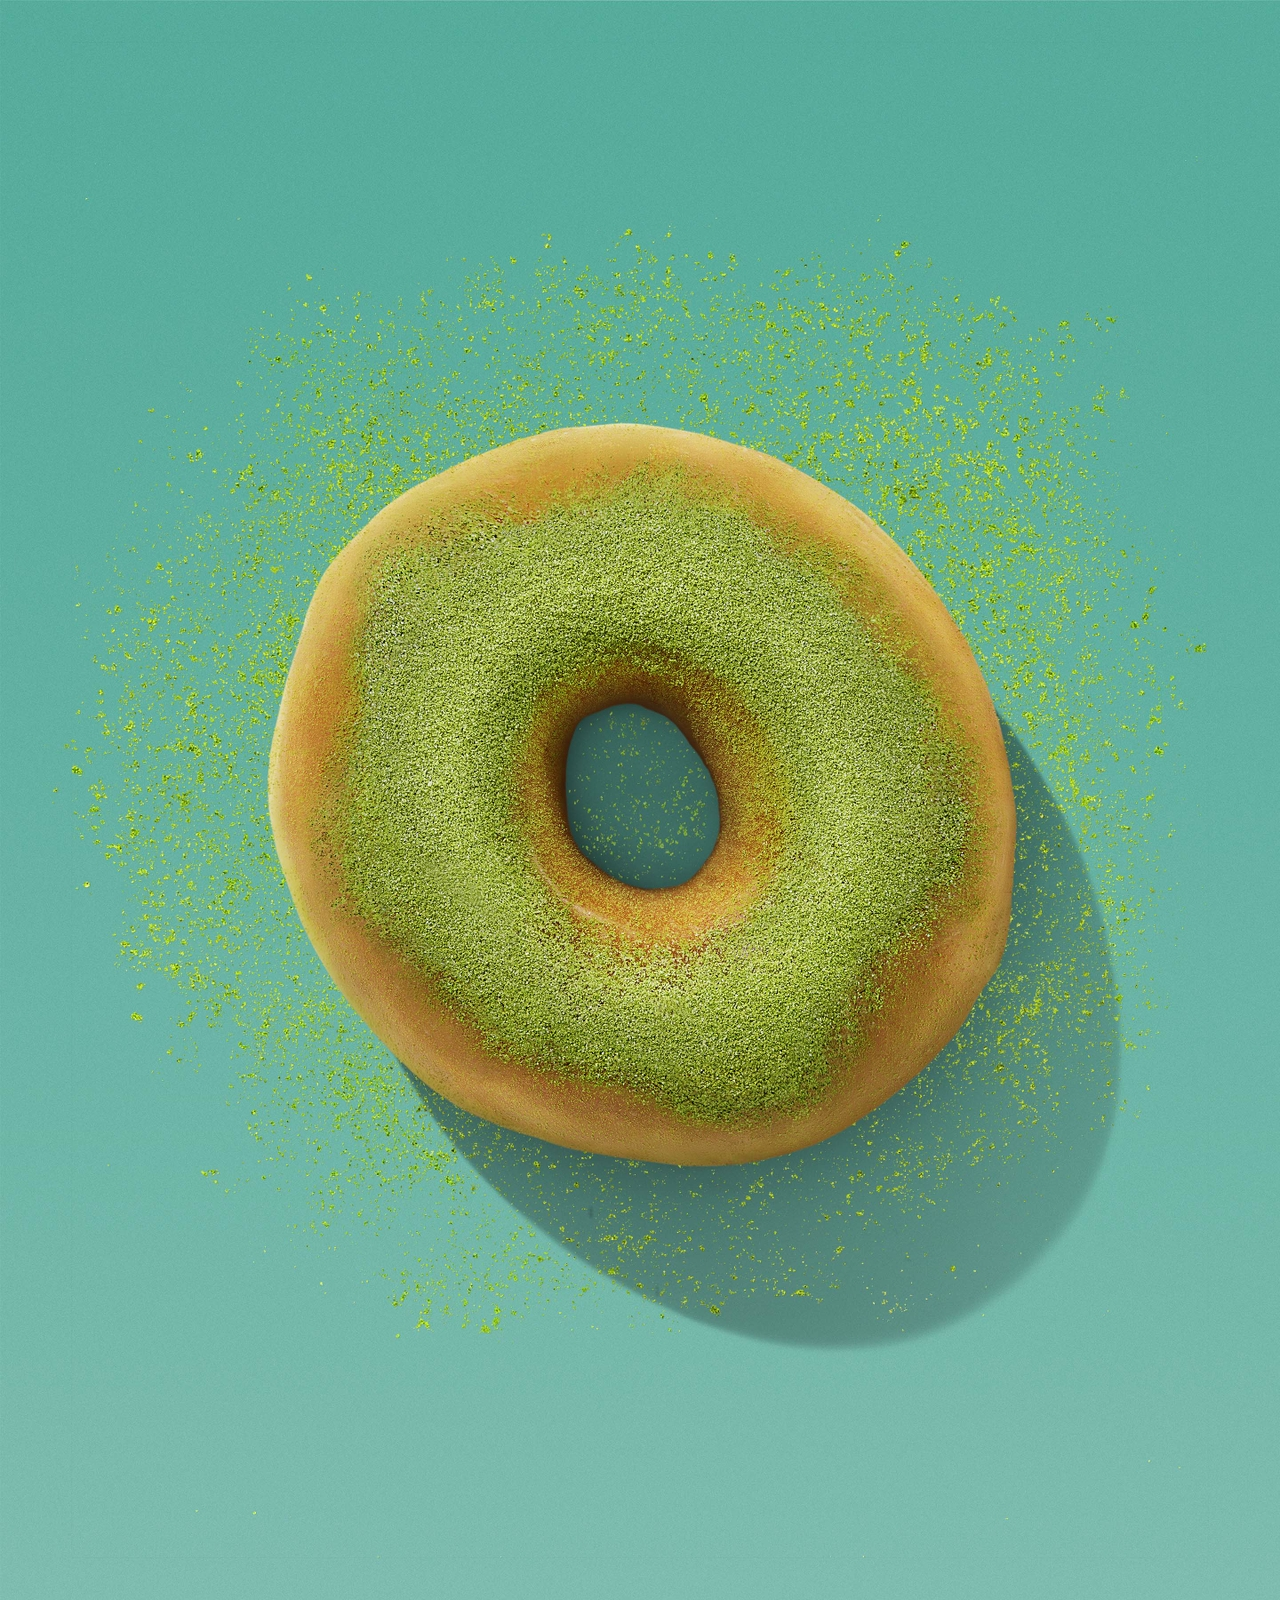 A glazed doughnut from Dunkin', topped with bright green matcha powder